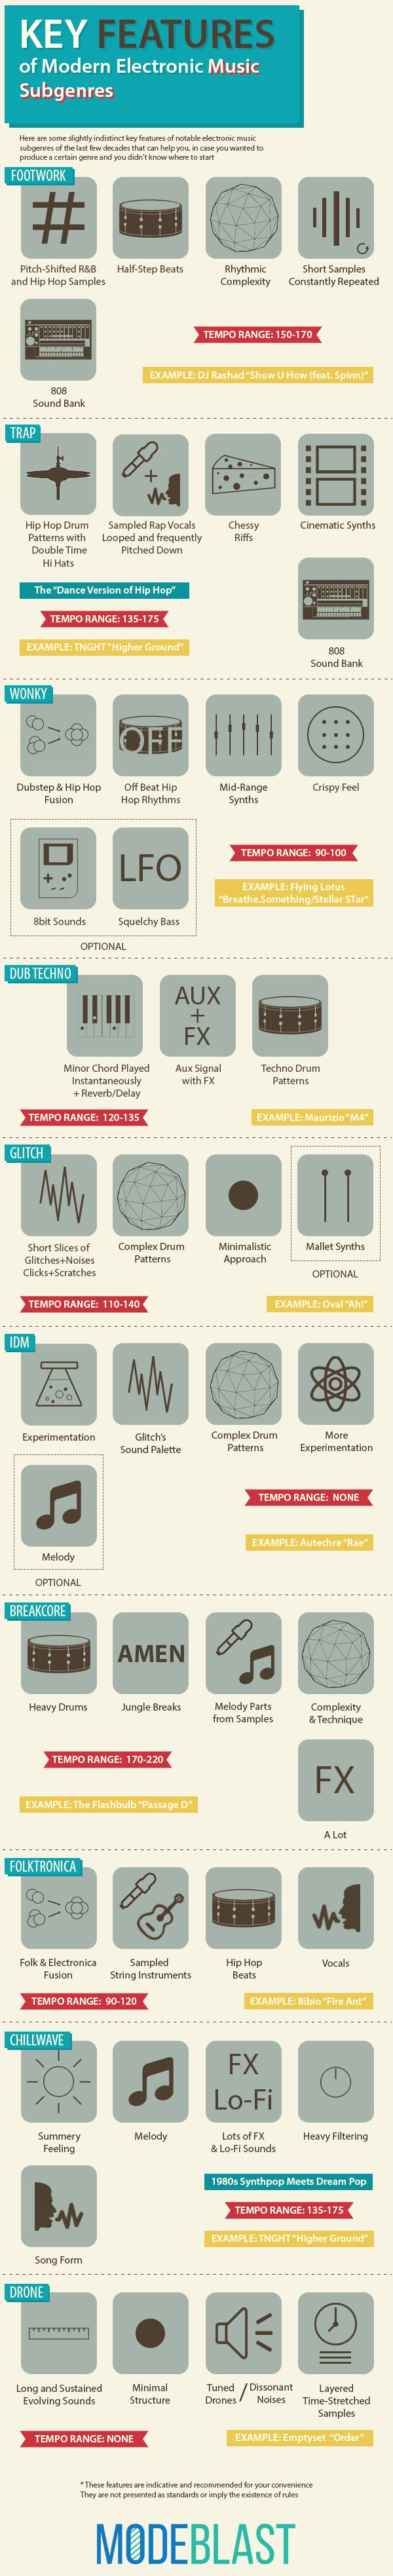 "Infographic for ""Key Features of Modern Electronic Music Subgenres"" post"